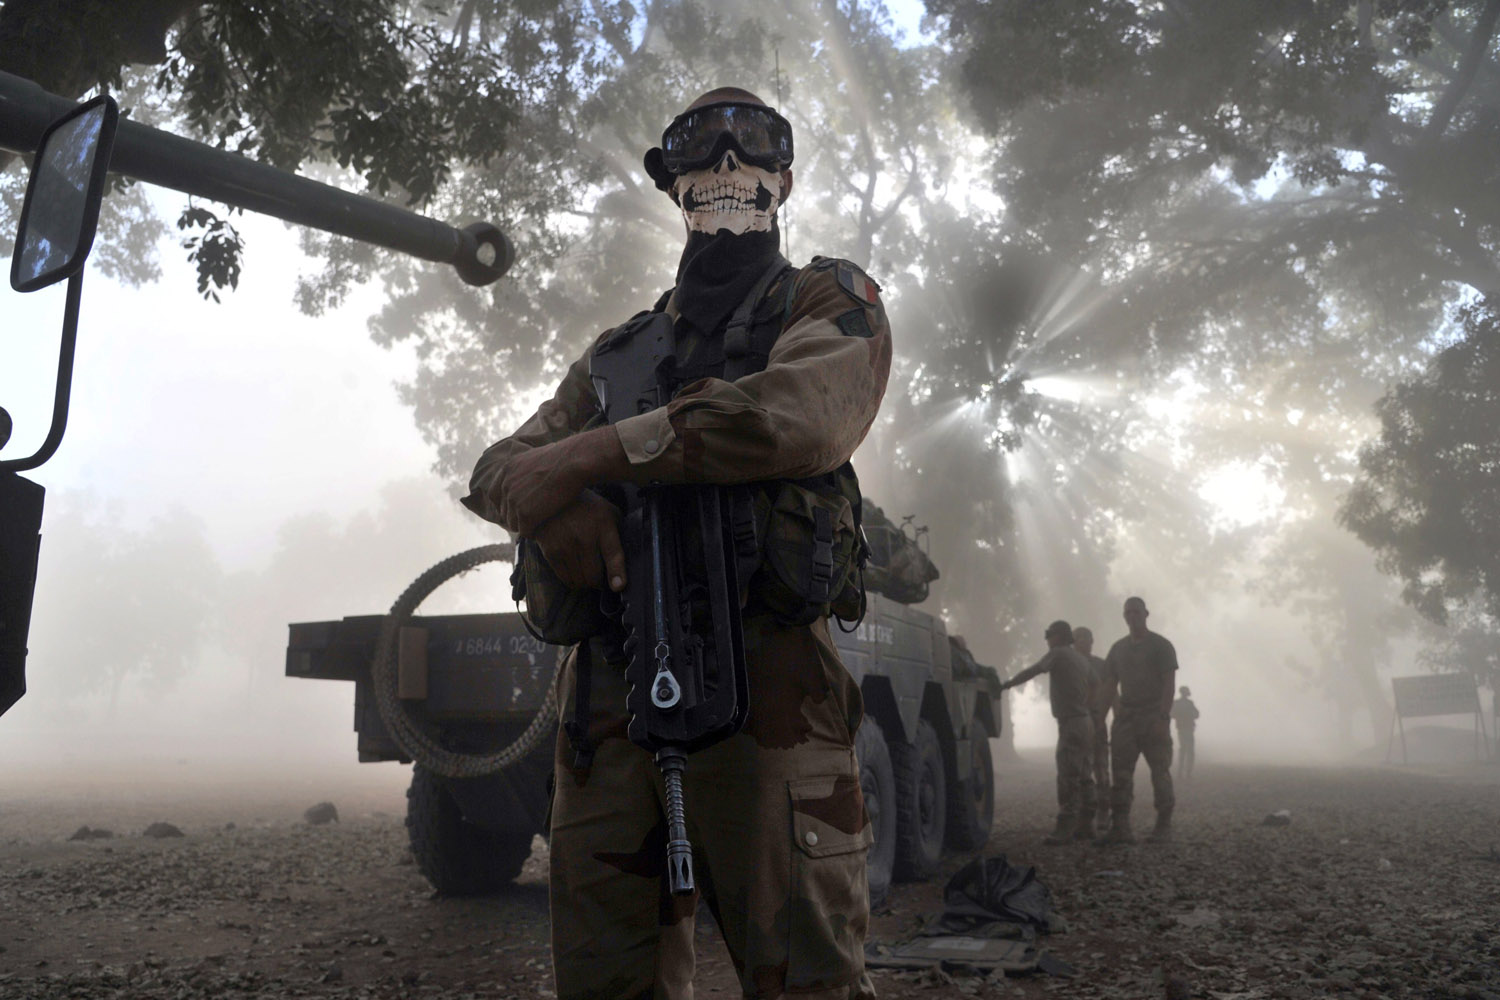 Jan. 20, 2013.  A French soldier wearing a skeleton mask stands next to a tank in a street in Niono, Mali.                                           Related: See more photos from the unfolding conflict in Mali